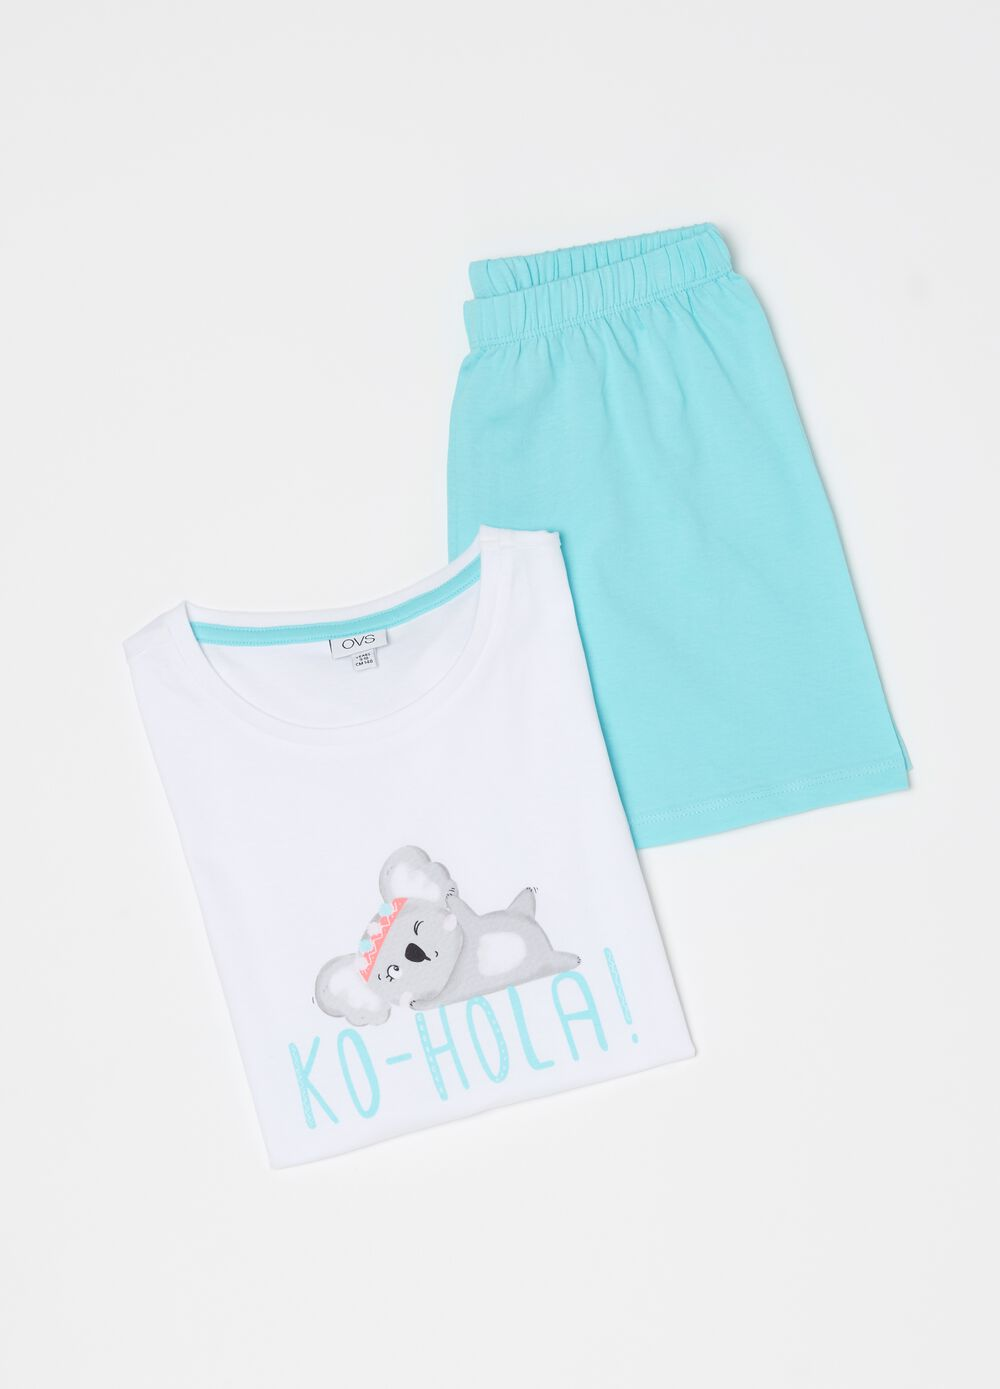 Short 100% organic cotton pyjamas with koala